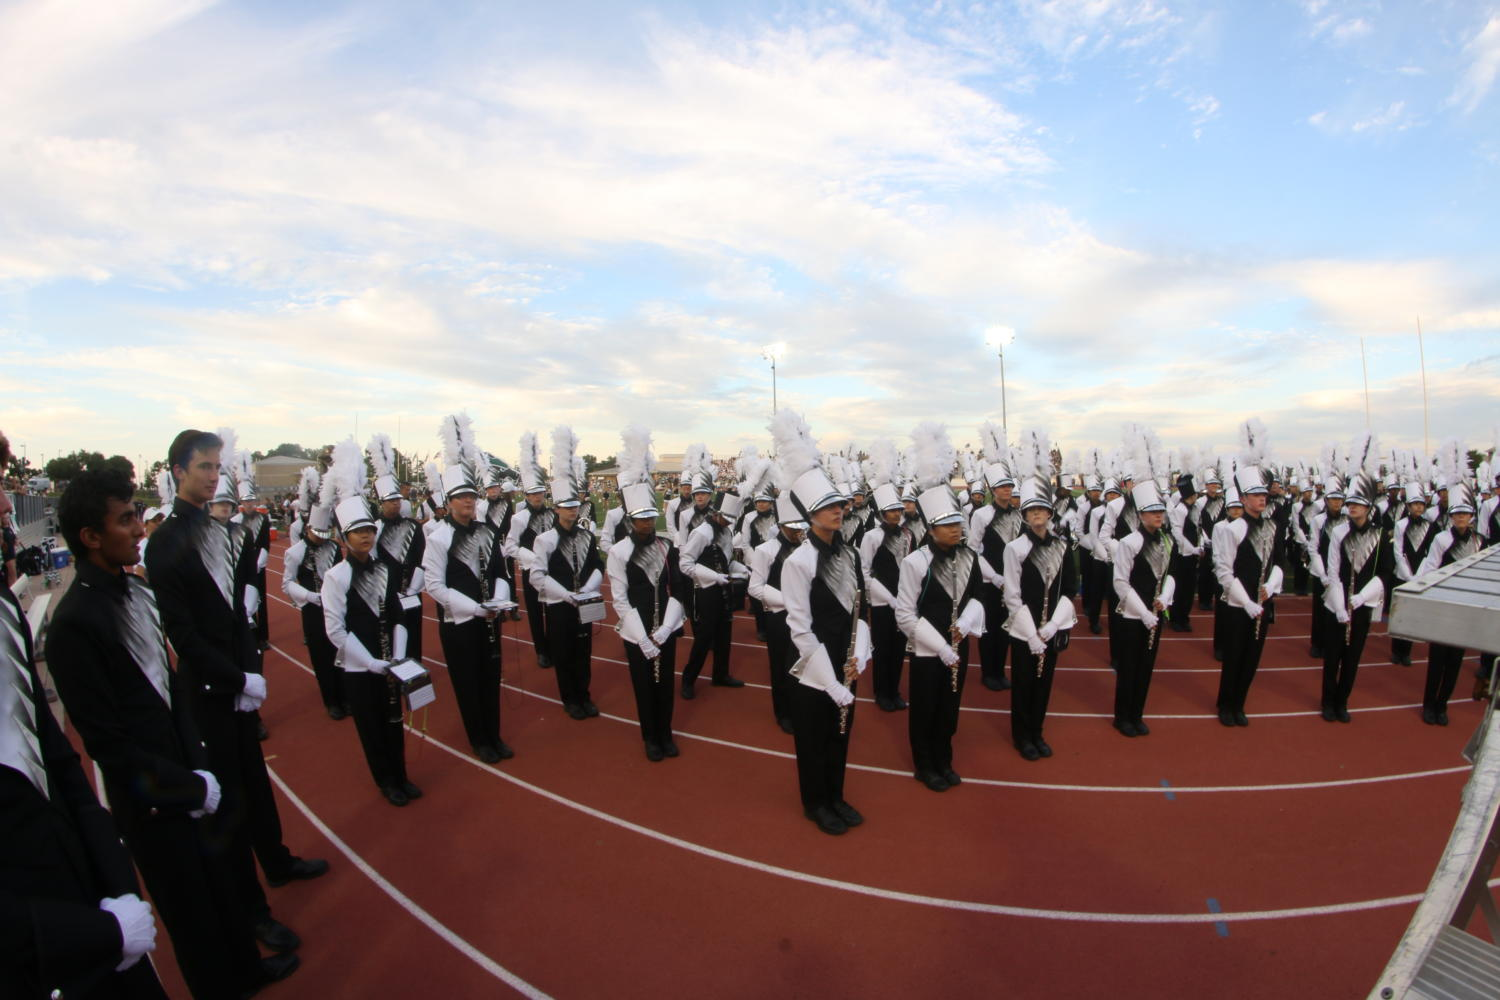 Band+wins+drumline+competition